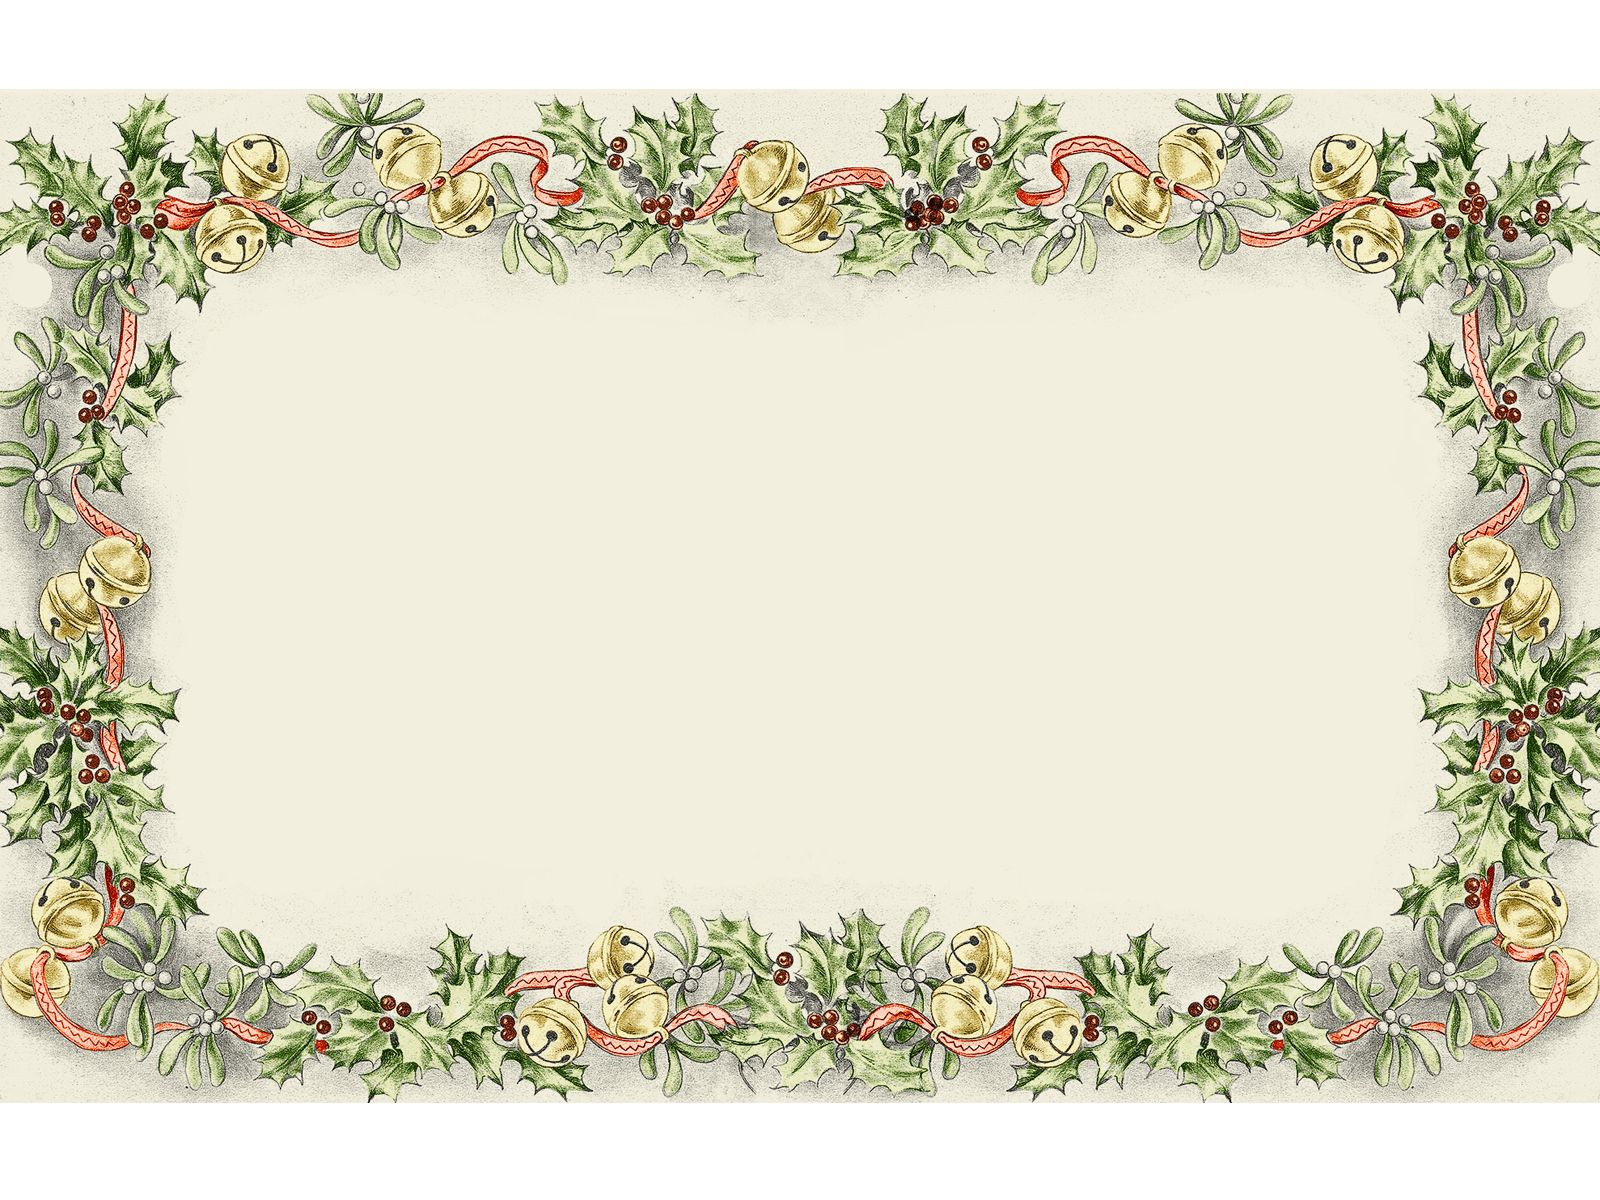 Christmas Photo Frame Template Free Frames Pictures Design | bordúry ...